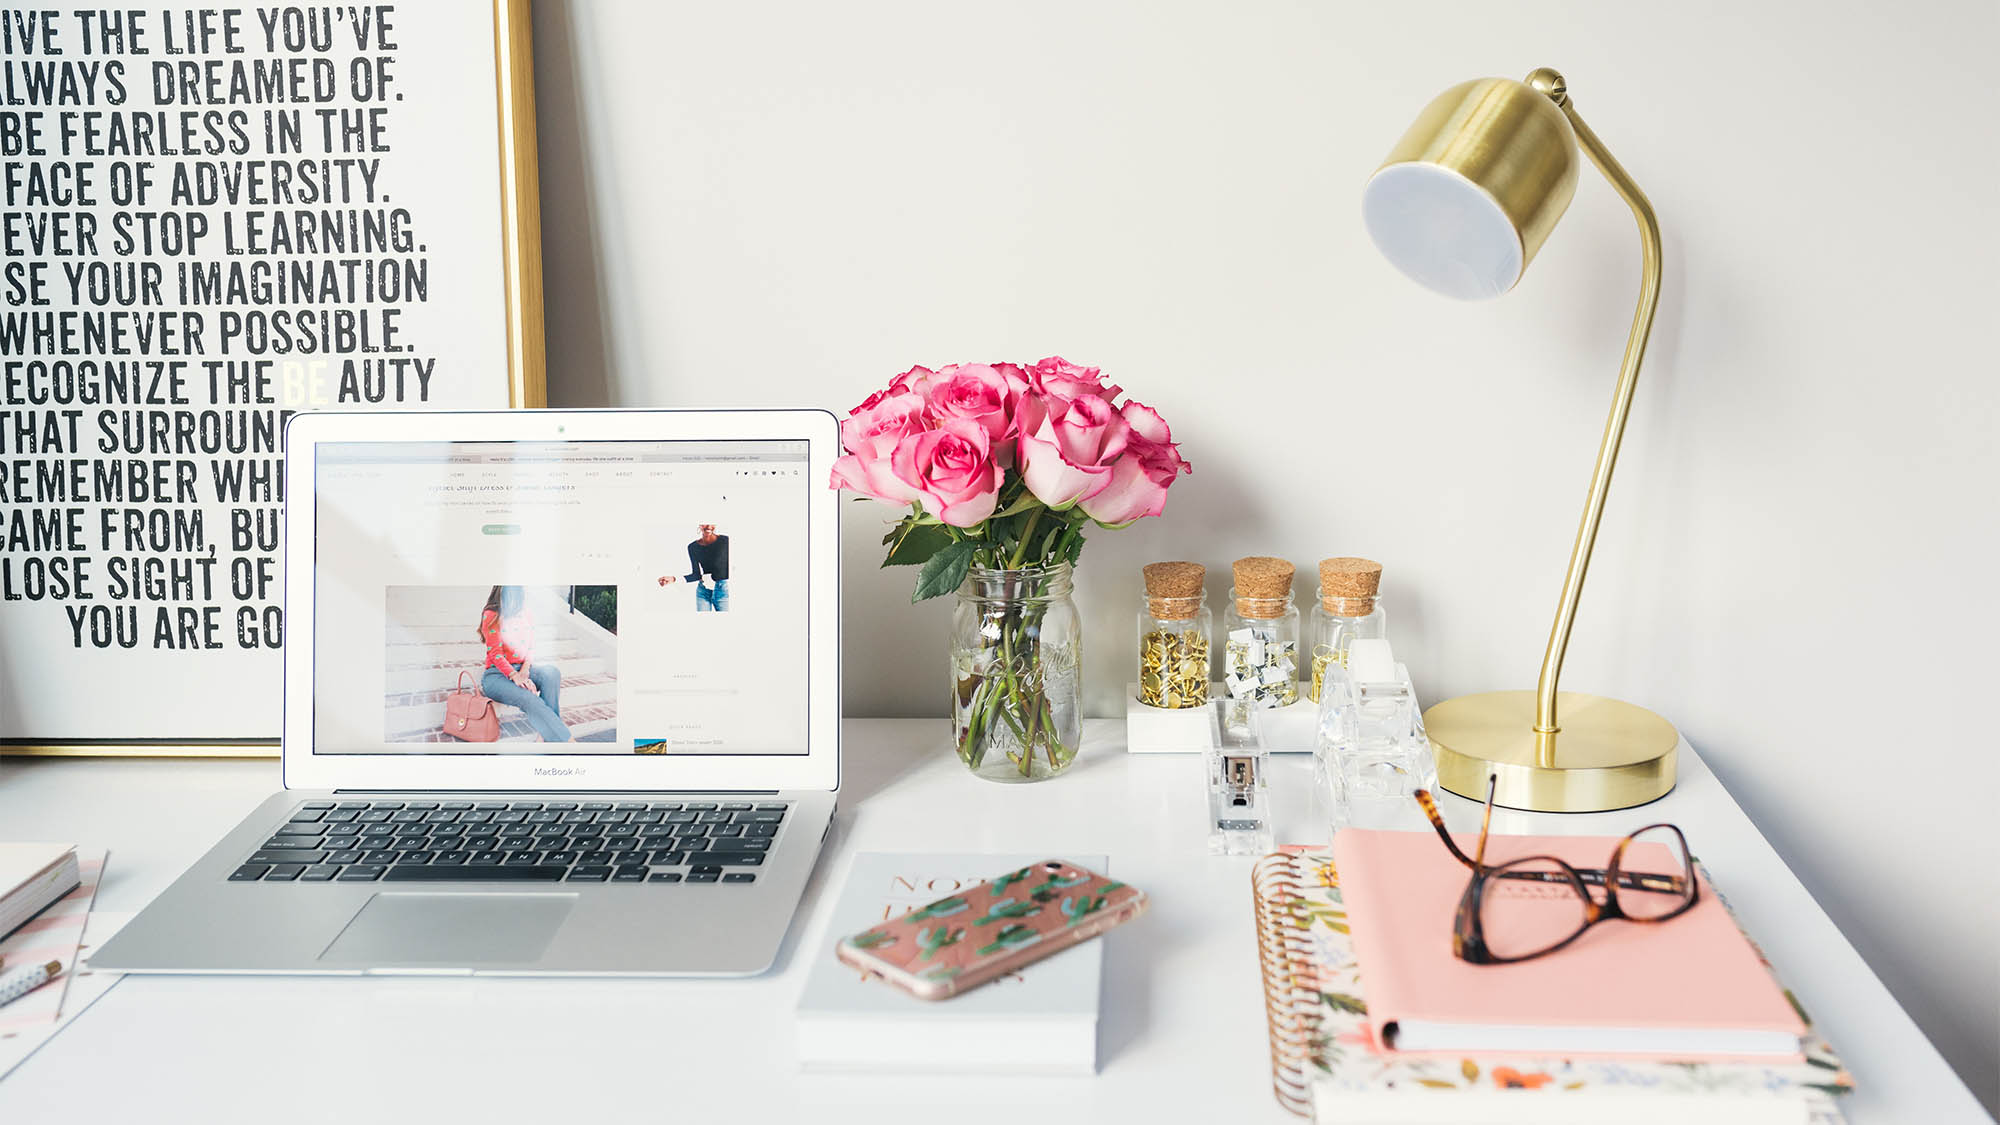 White desk with Macbook, pink roses, pink notepad and pink iPhone, framed art with words in background